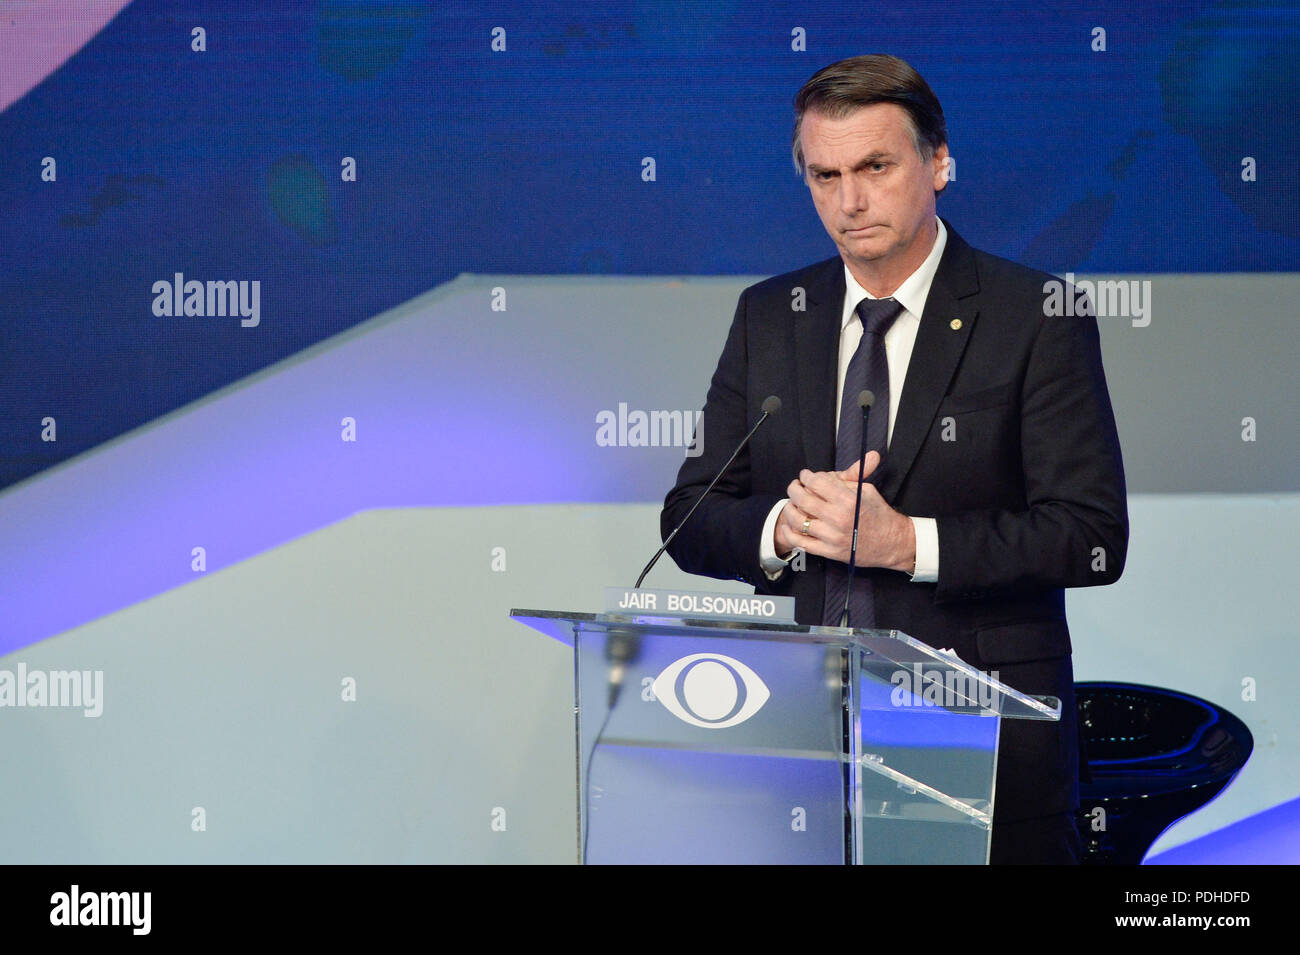 Sao Paulo, Brazil, on August 9, 2018. Brazilian presidential candidate Jair Bolsonaro (PSL), speaks during the first presidential debate ahead of the October 7 general election, at Bandeirantes television network in Sao Paulo, Brazil, on August 9, 2018.  (PHOTO: LEVI BIANCO/BRAZIL PHOTO PRESS) - Stock Image